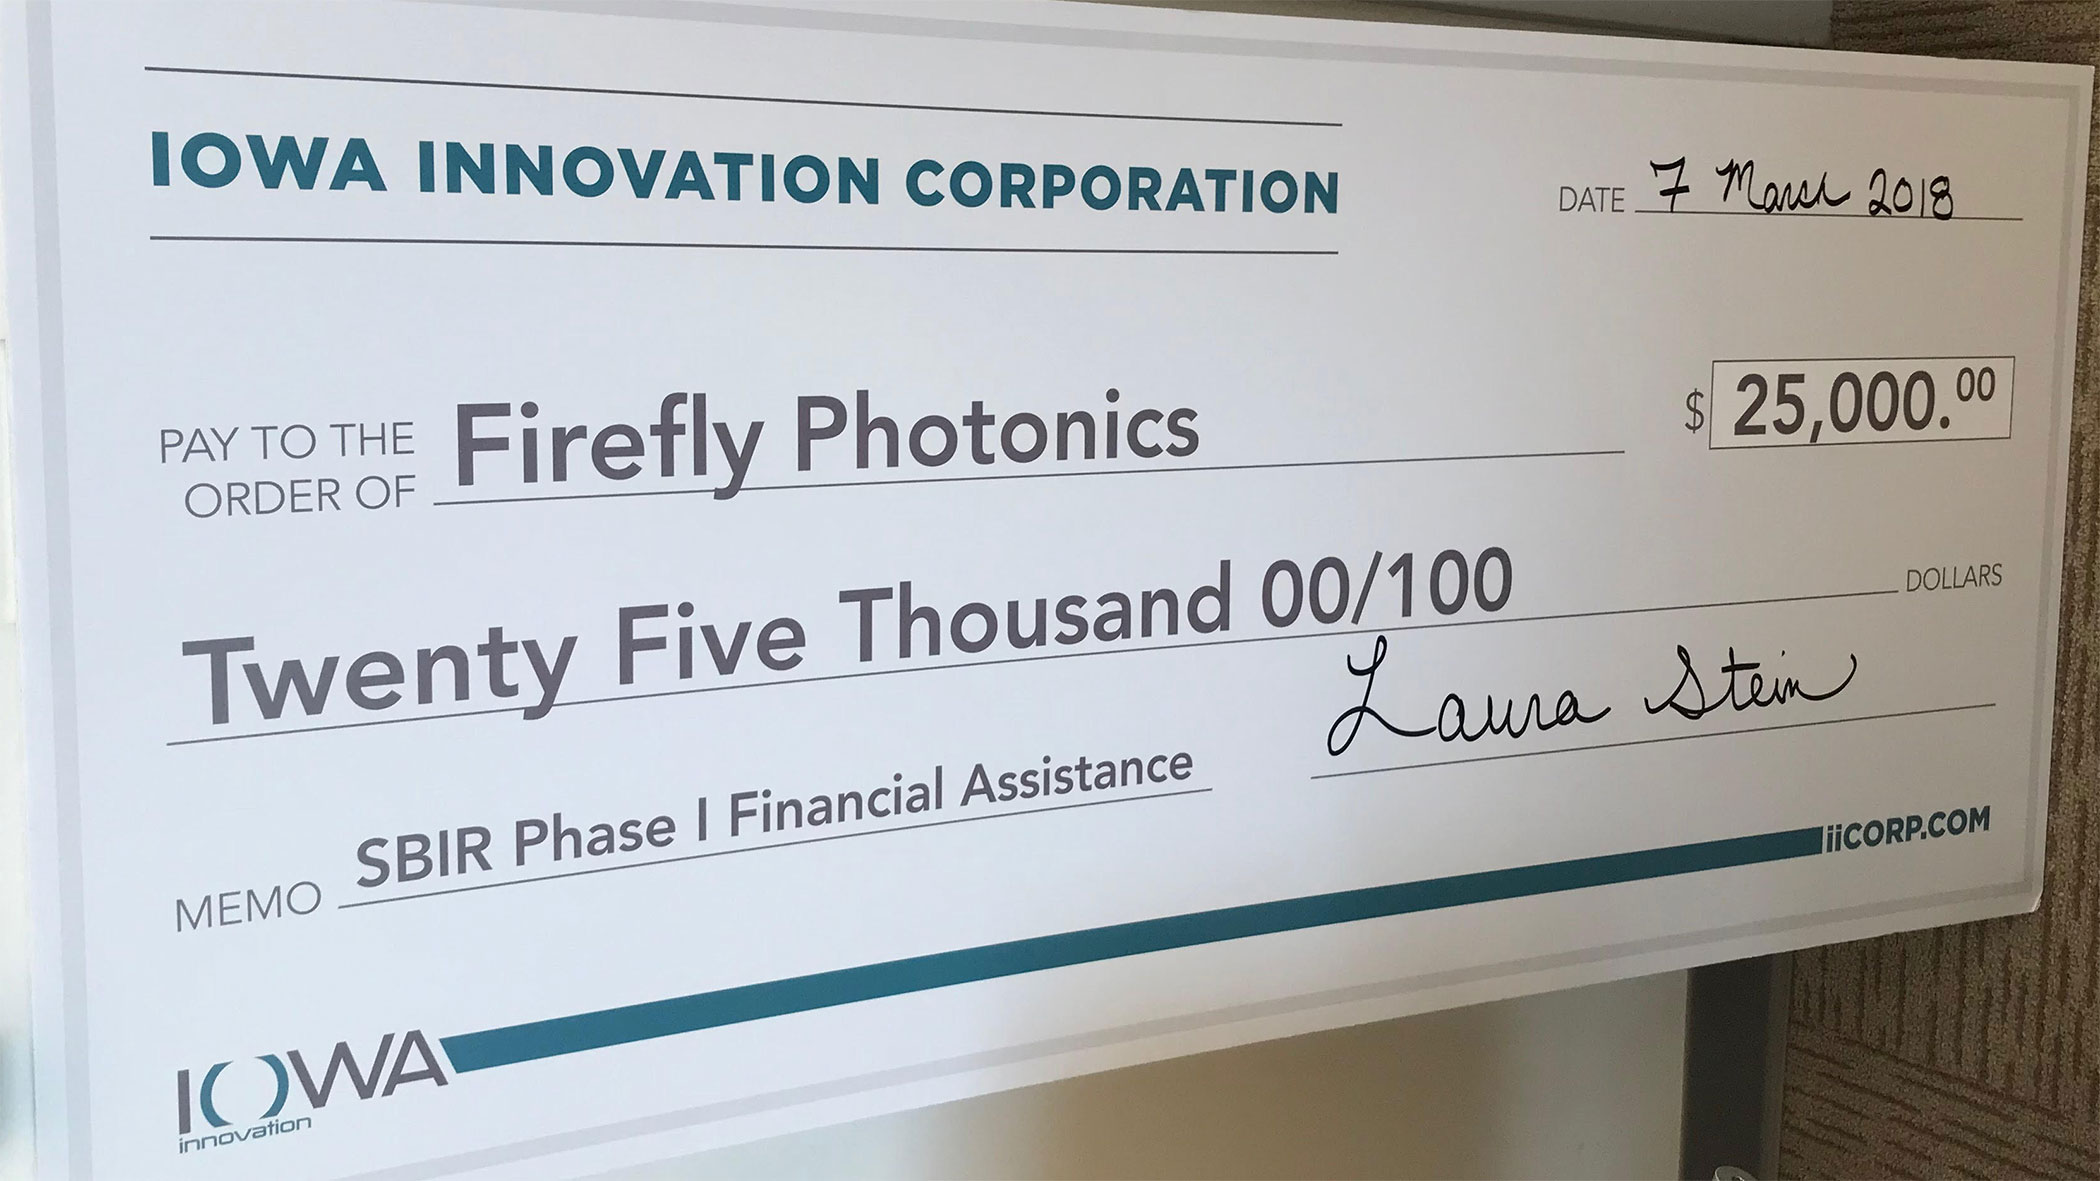 $25000 check to Firefly Photonoics